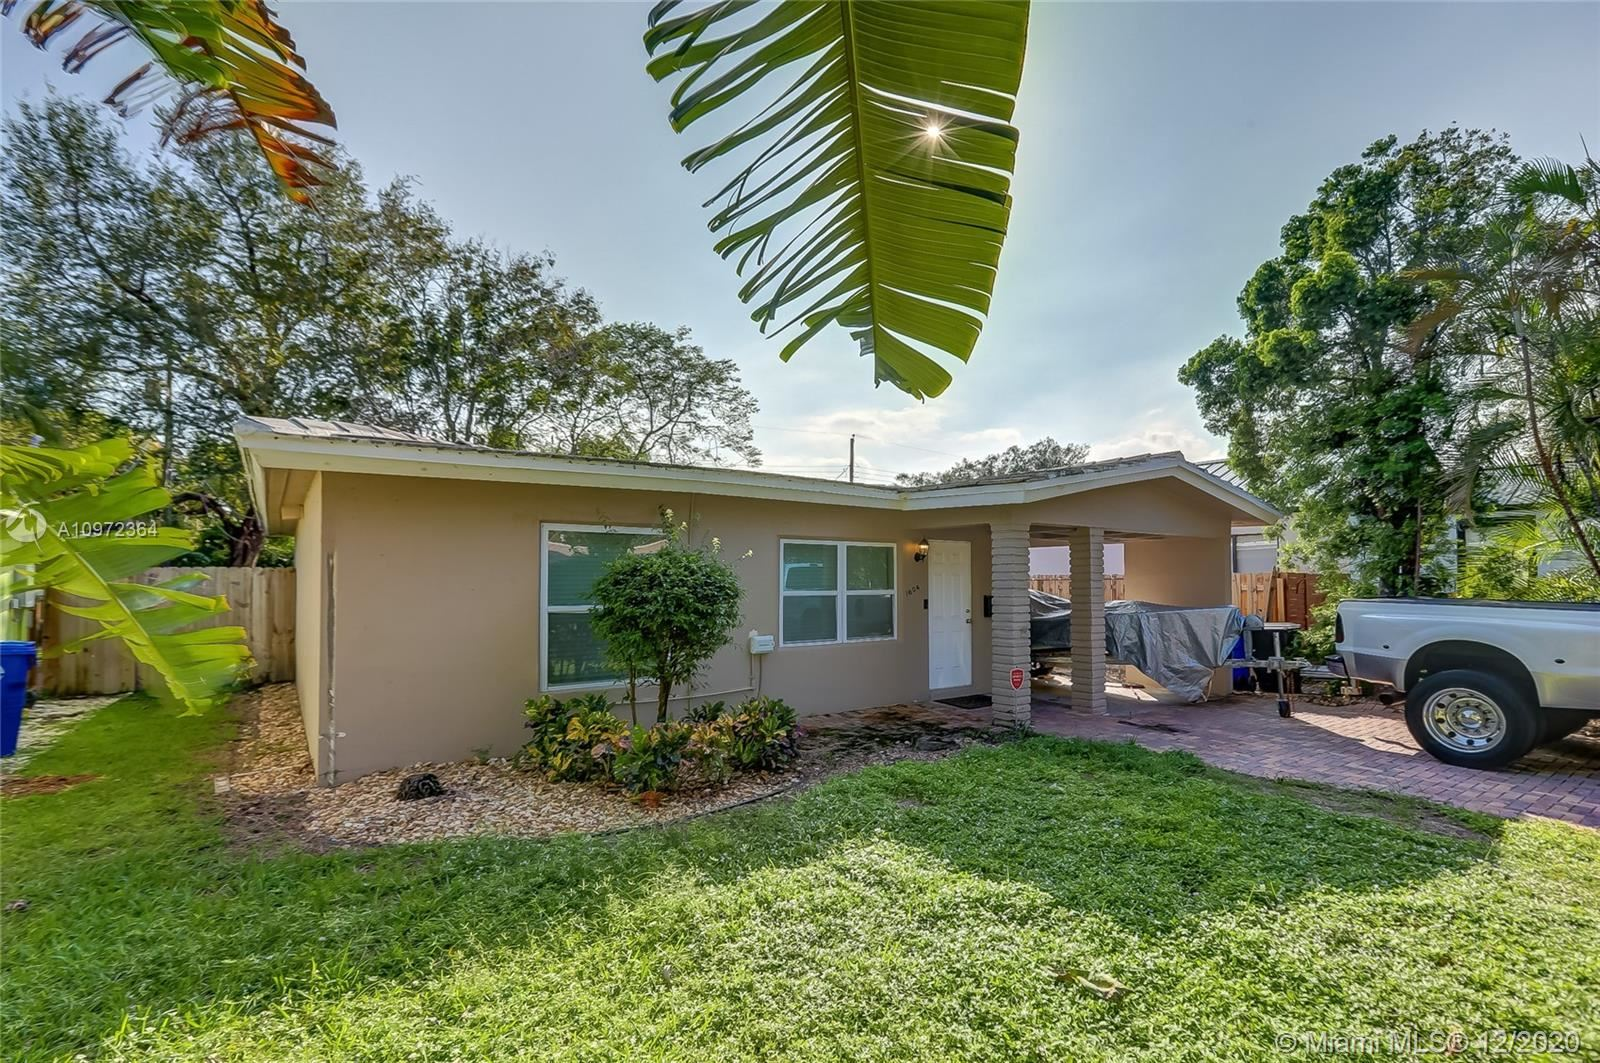 1604 NE 5th Ct, Fort Lauderdale, FL 33301 - #: A10972364